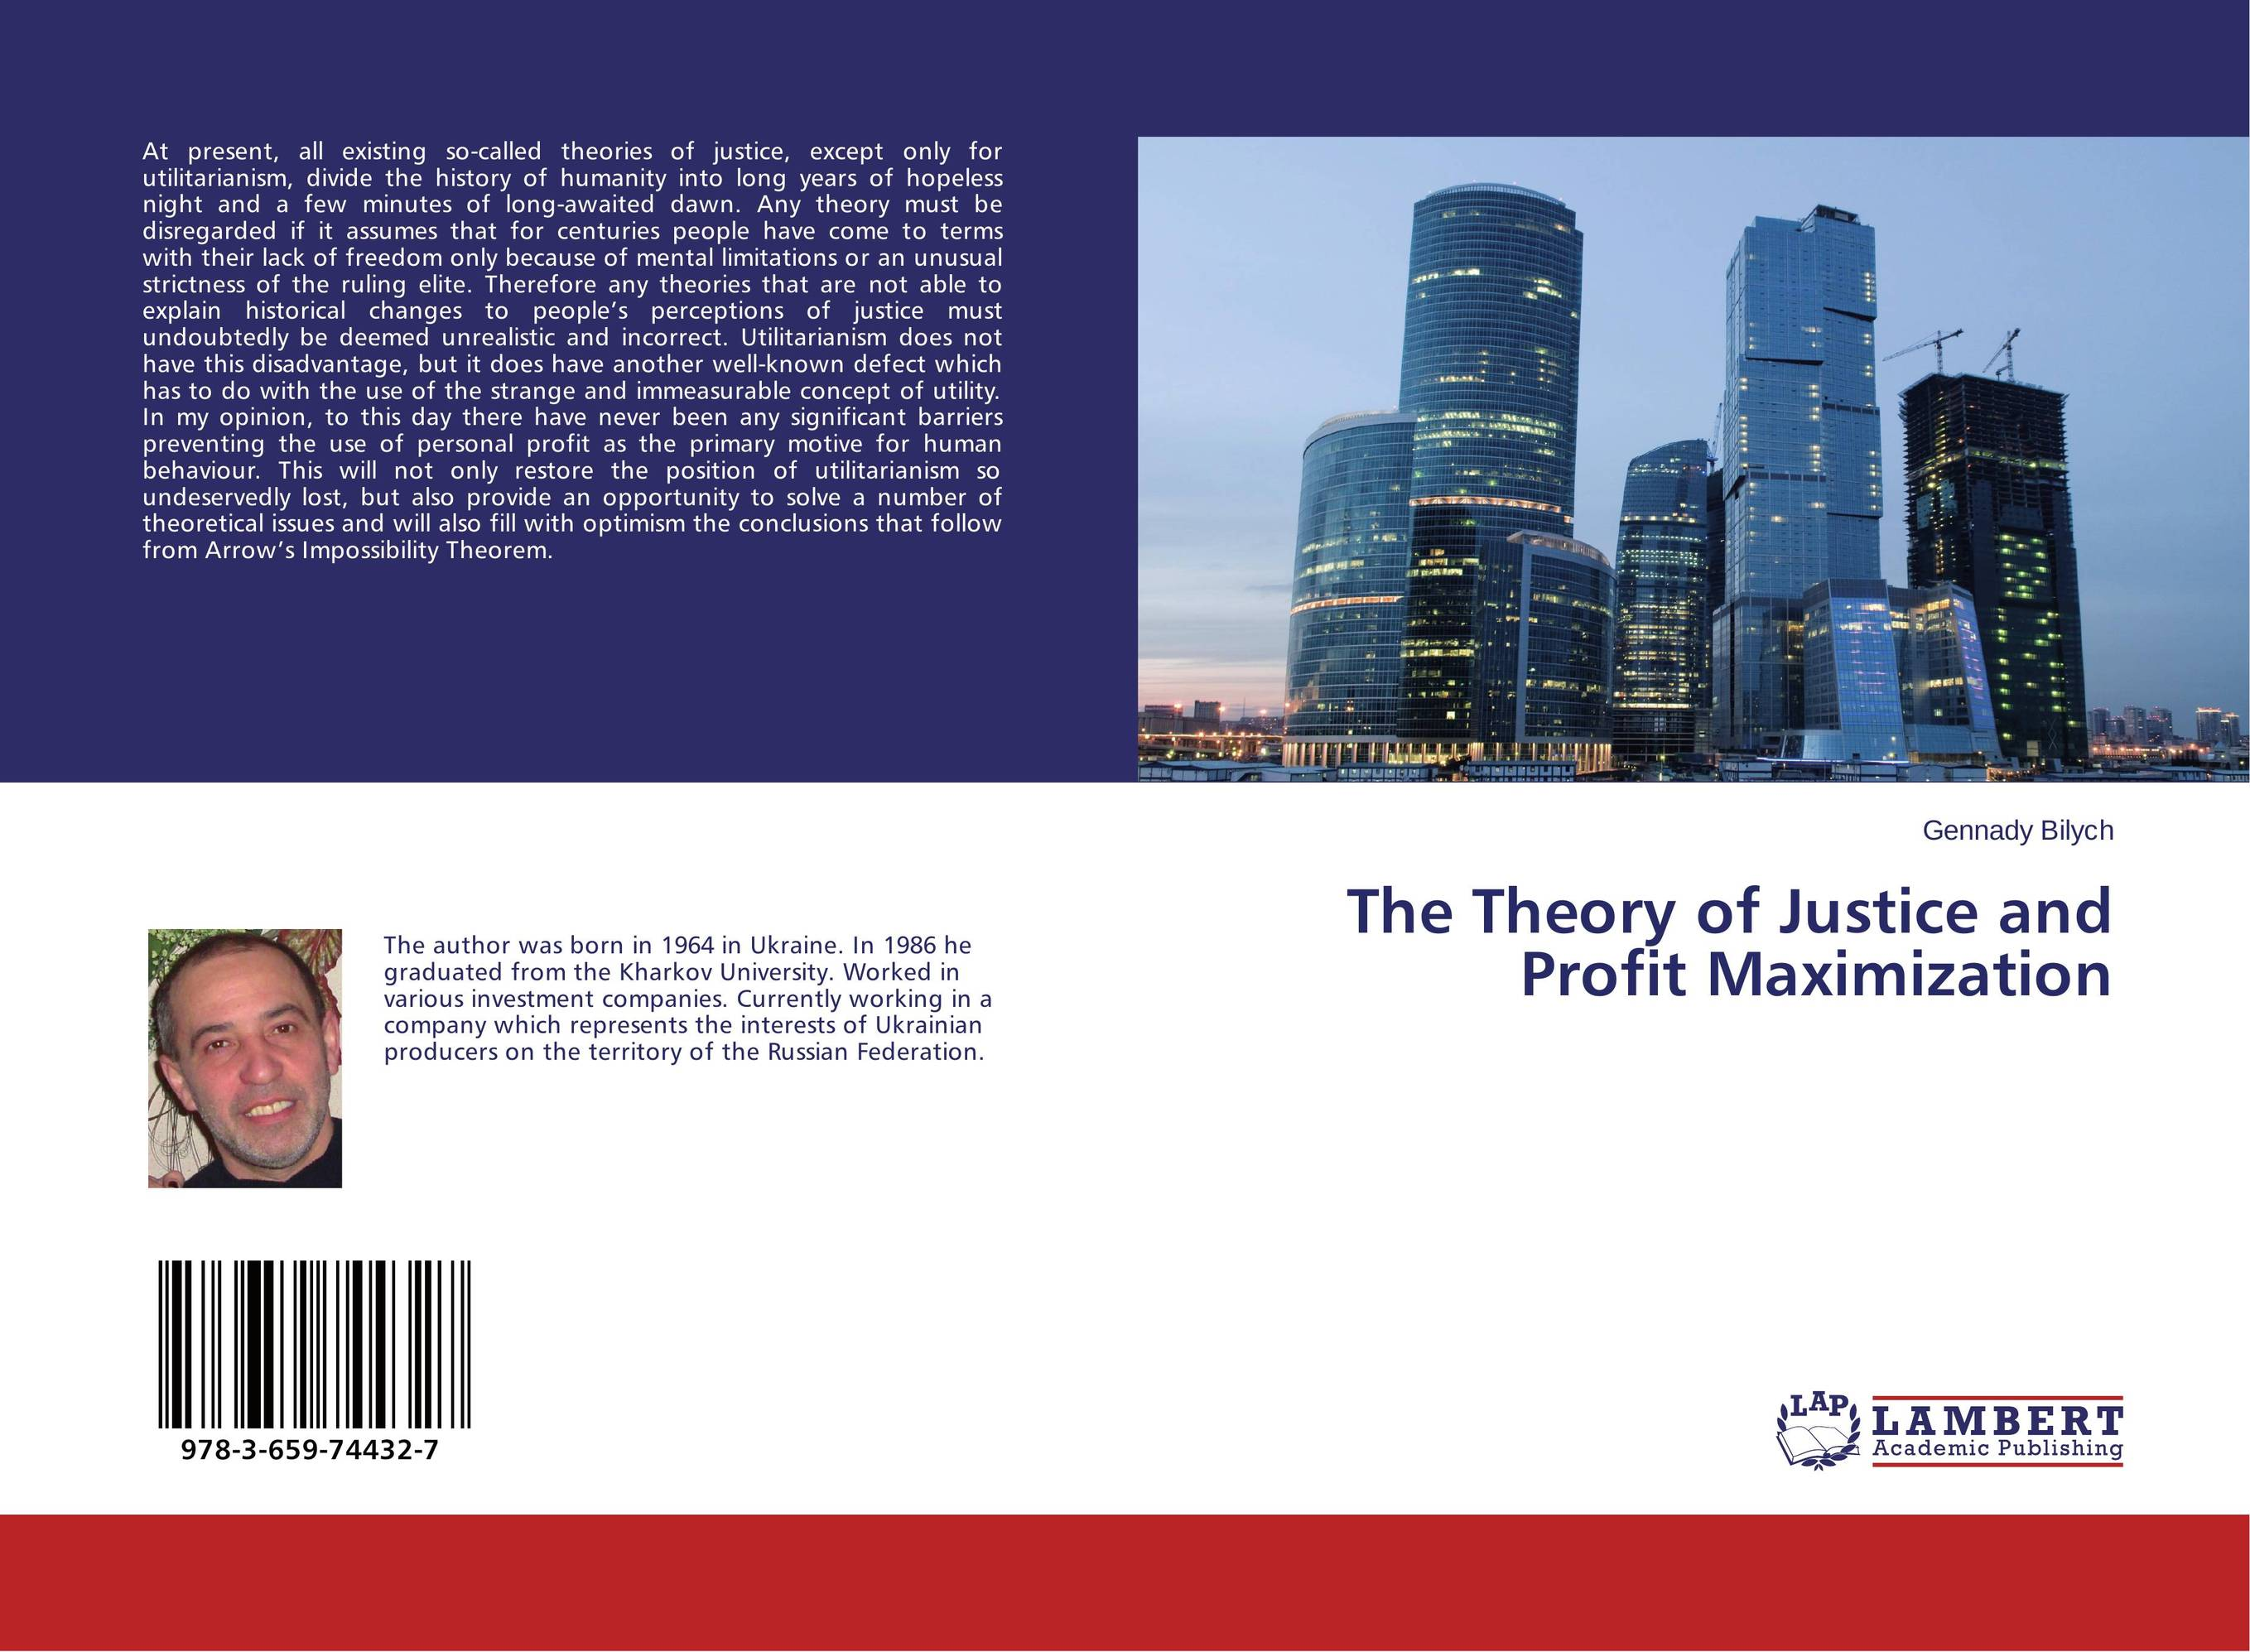 The Theory of Justice and Profit Maximization